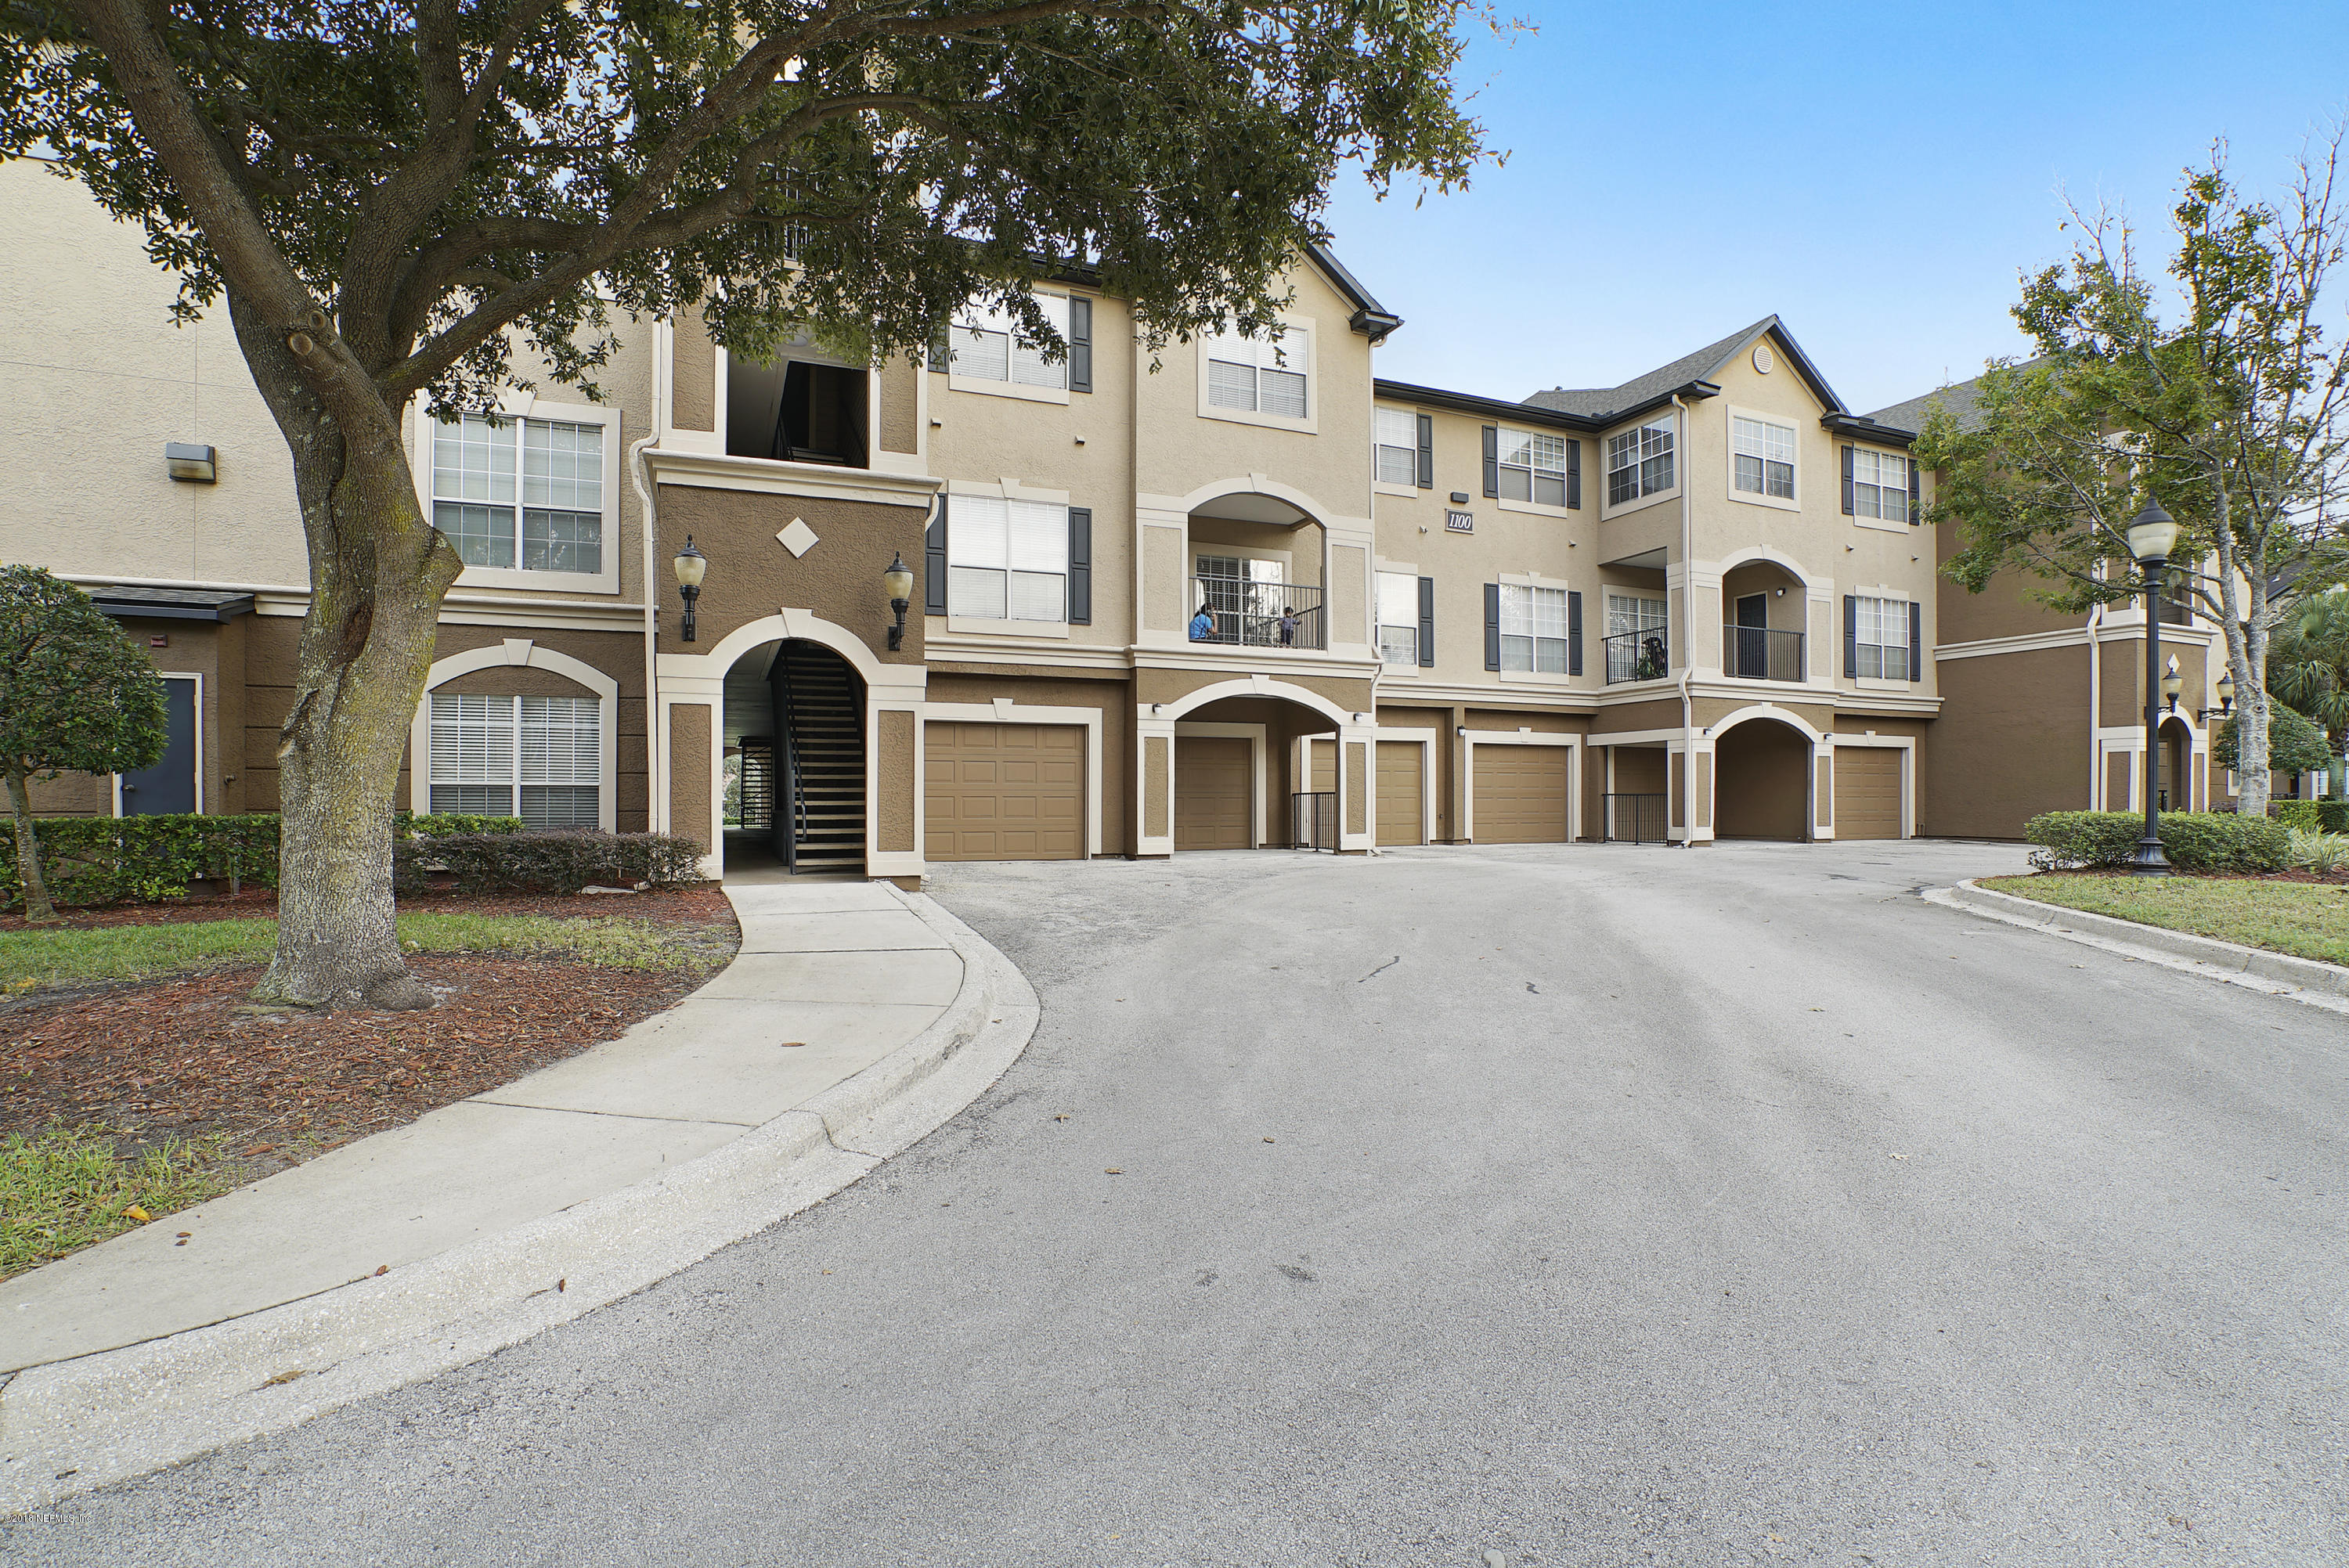 10961 BURNT MILL, JACKSONVILLE, FLORIDA 32256, 2 Bedrooms Bedrooms, ,2 BathroomsBathrooms,Residential - condos/townhomes,For sale,BURNT MILL,965502